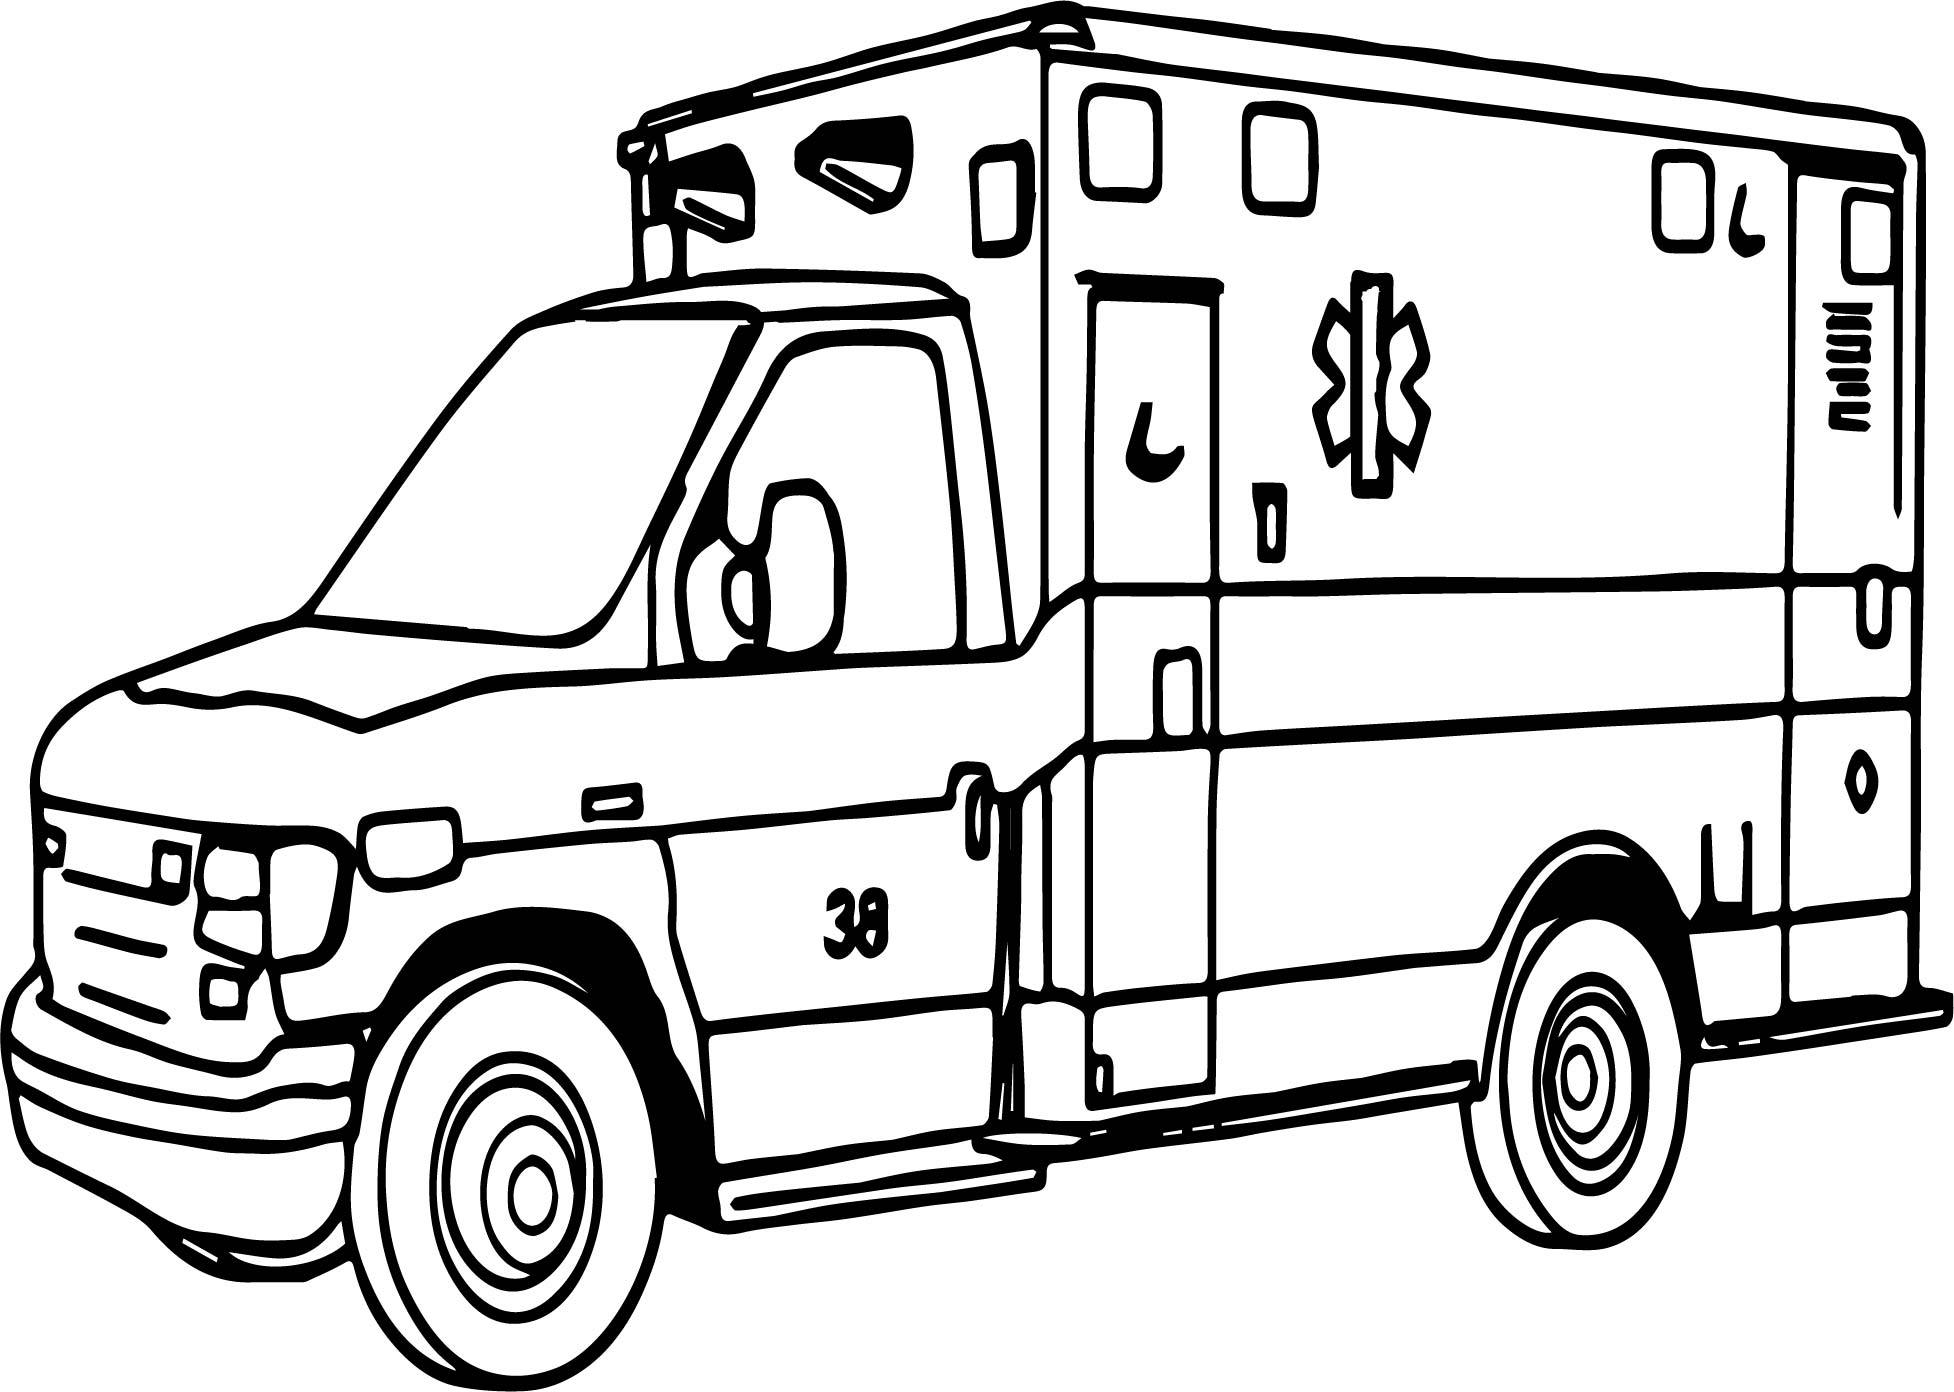 The Best Free Ambulance Drawing Images Download From 103 Free Drawings Of Ambulance At Getdrawings